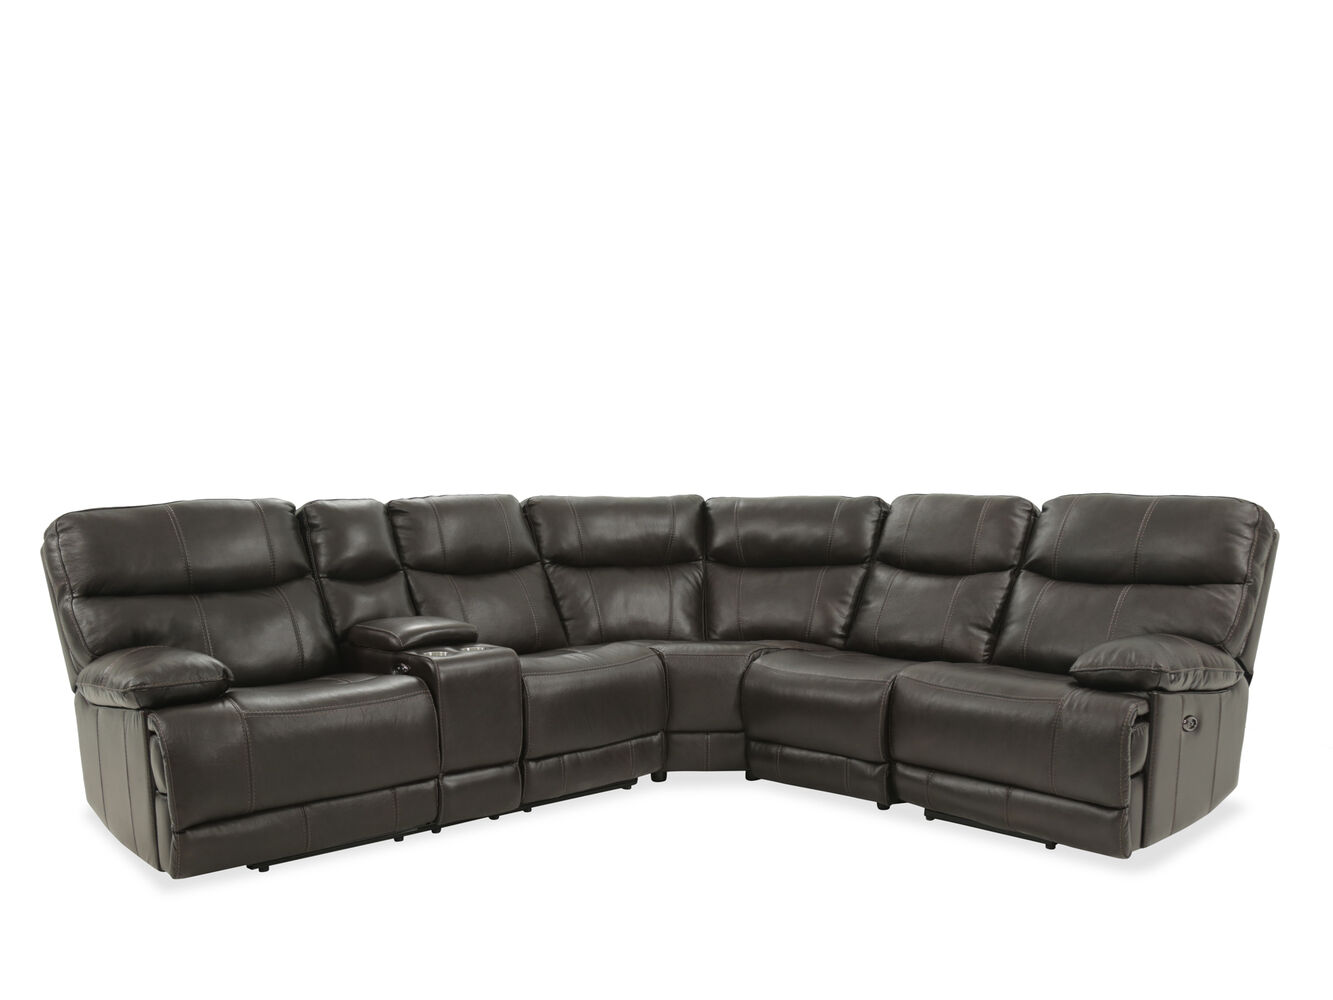 Four-Piece Leather Reclining Sectional in Brown | Mathis Brothers ...